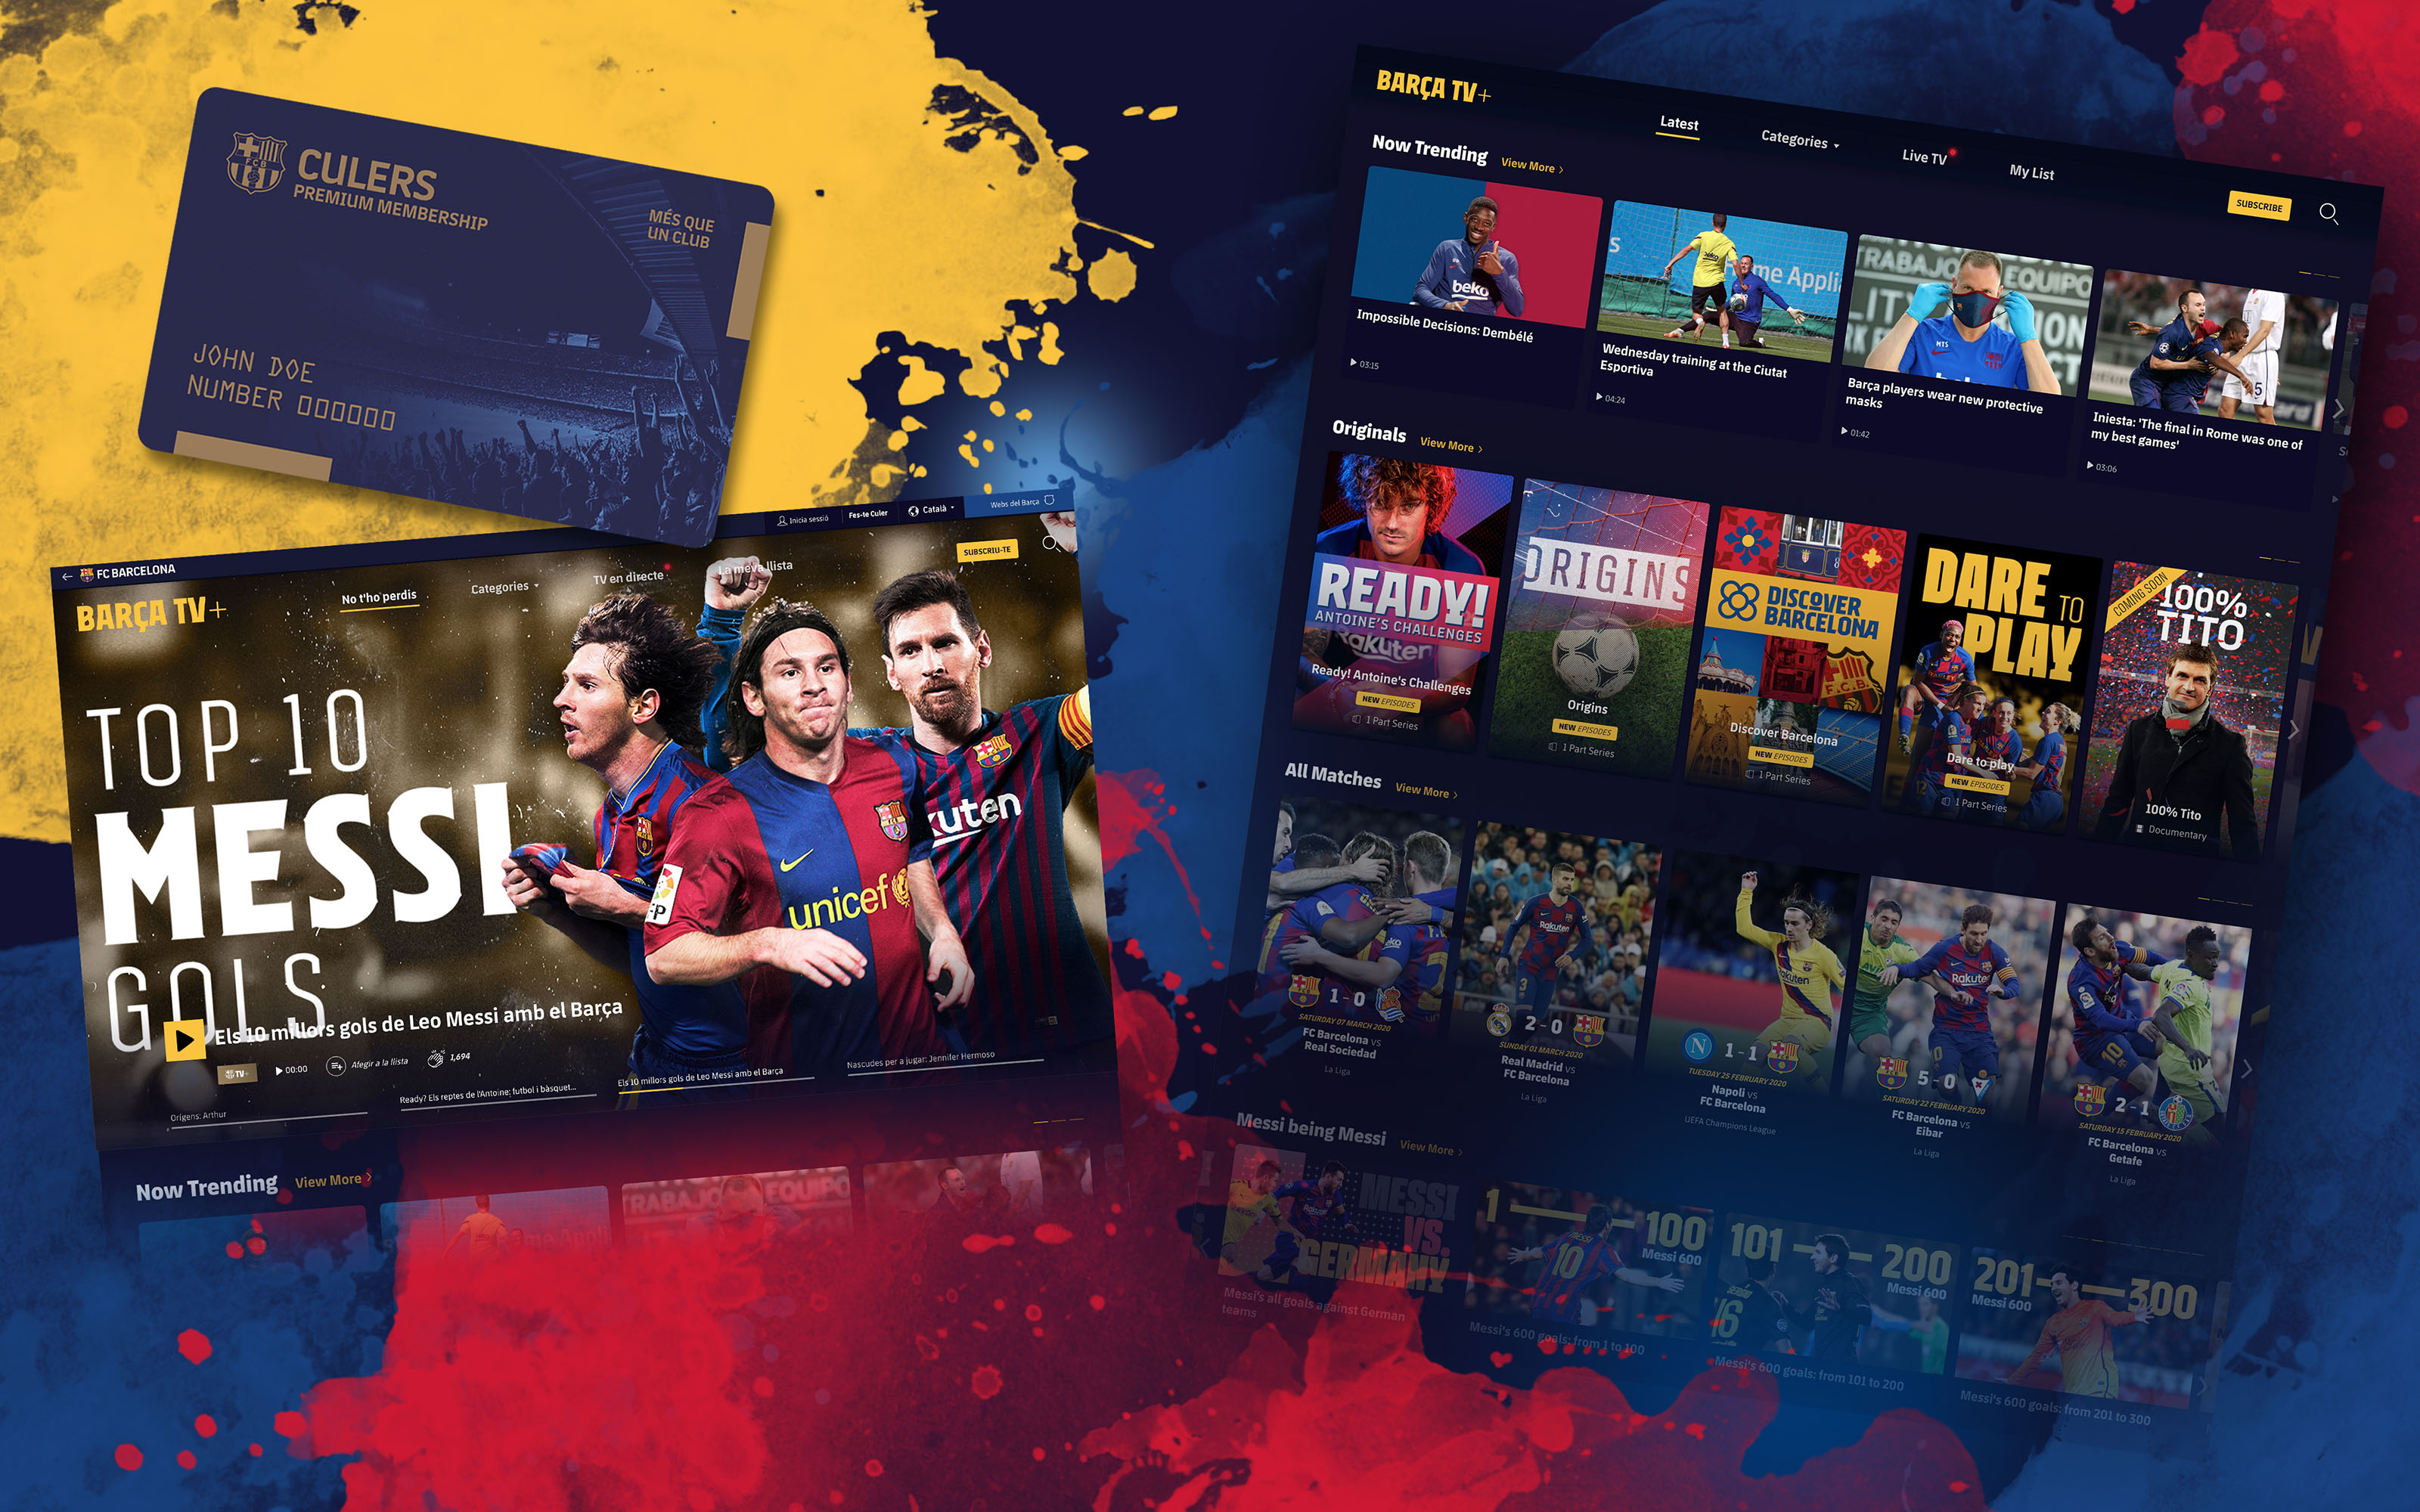 FC Barcelona launch 'BARÇA TV+' streaming service with more than 3,000 videos and 1,000 hours of content